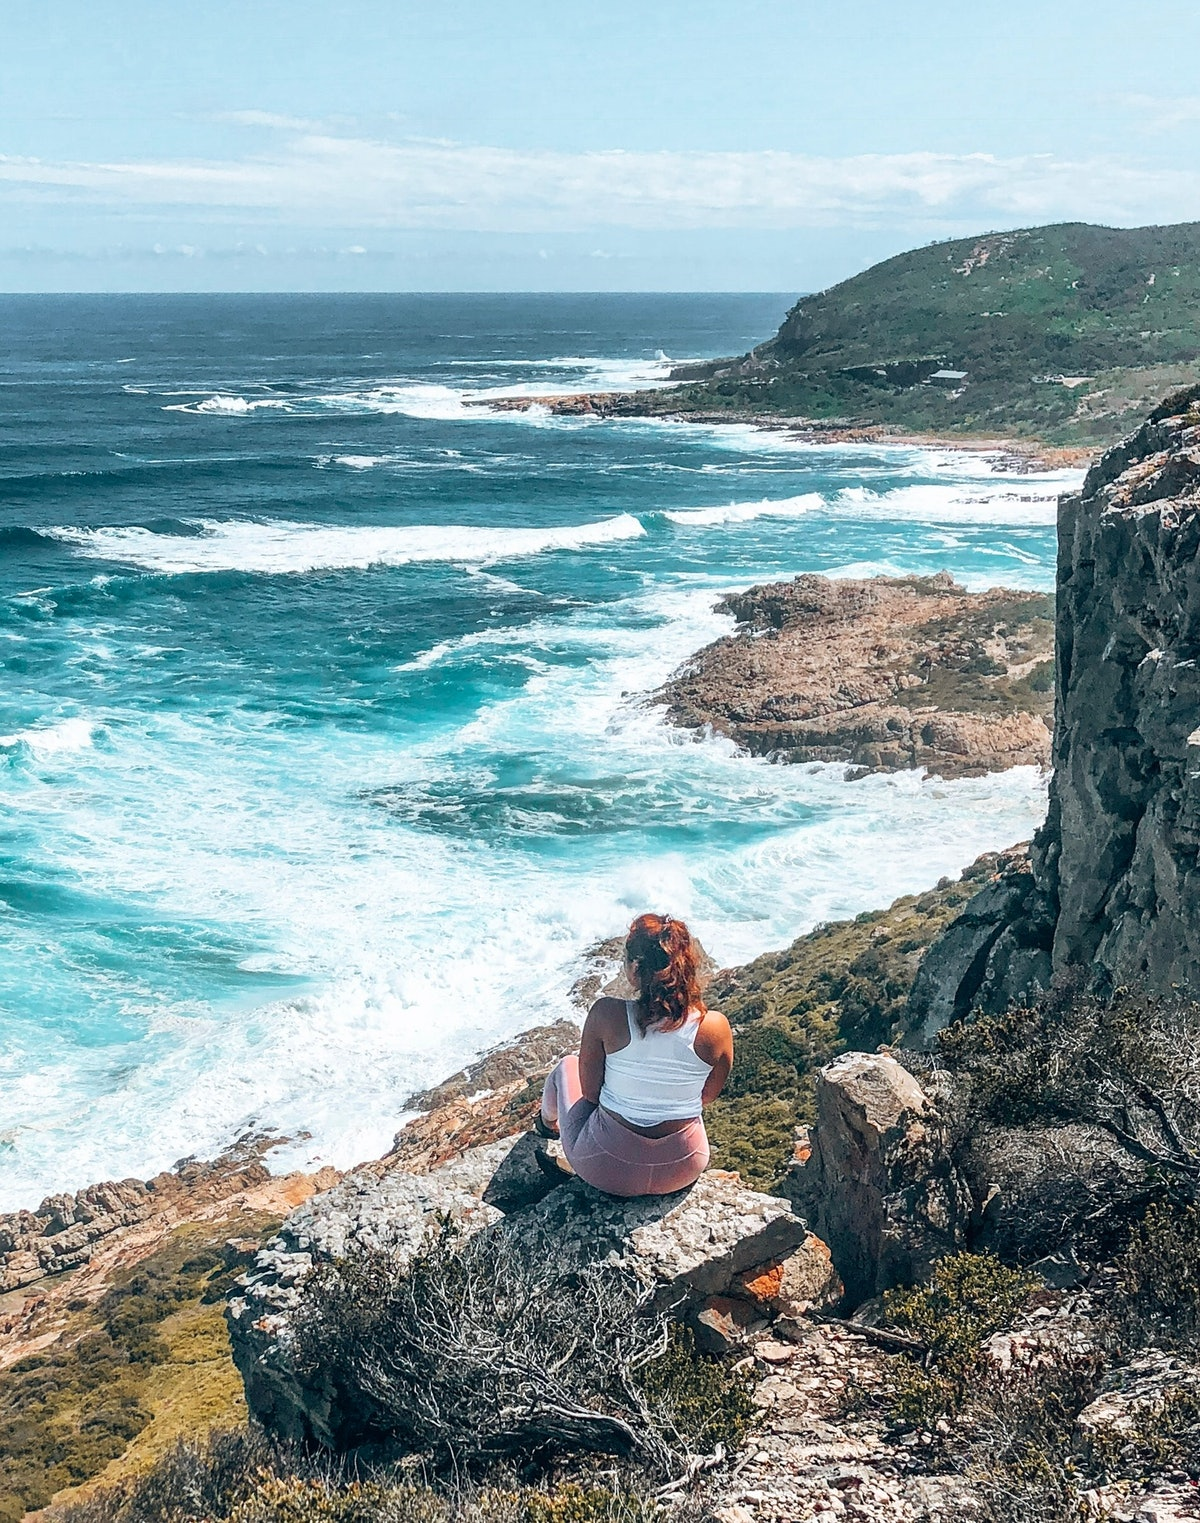 A woman dressed in workout attire sits on a rock and looks out at the ocean below.